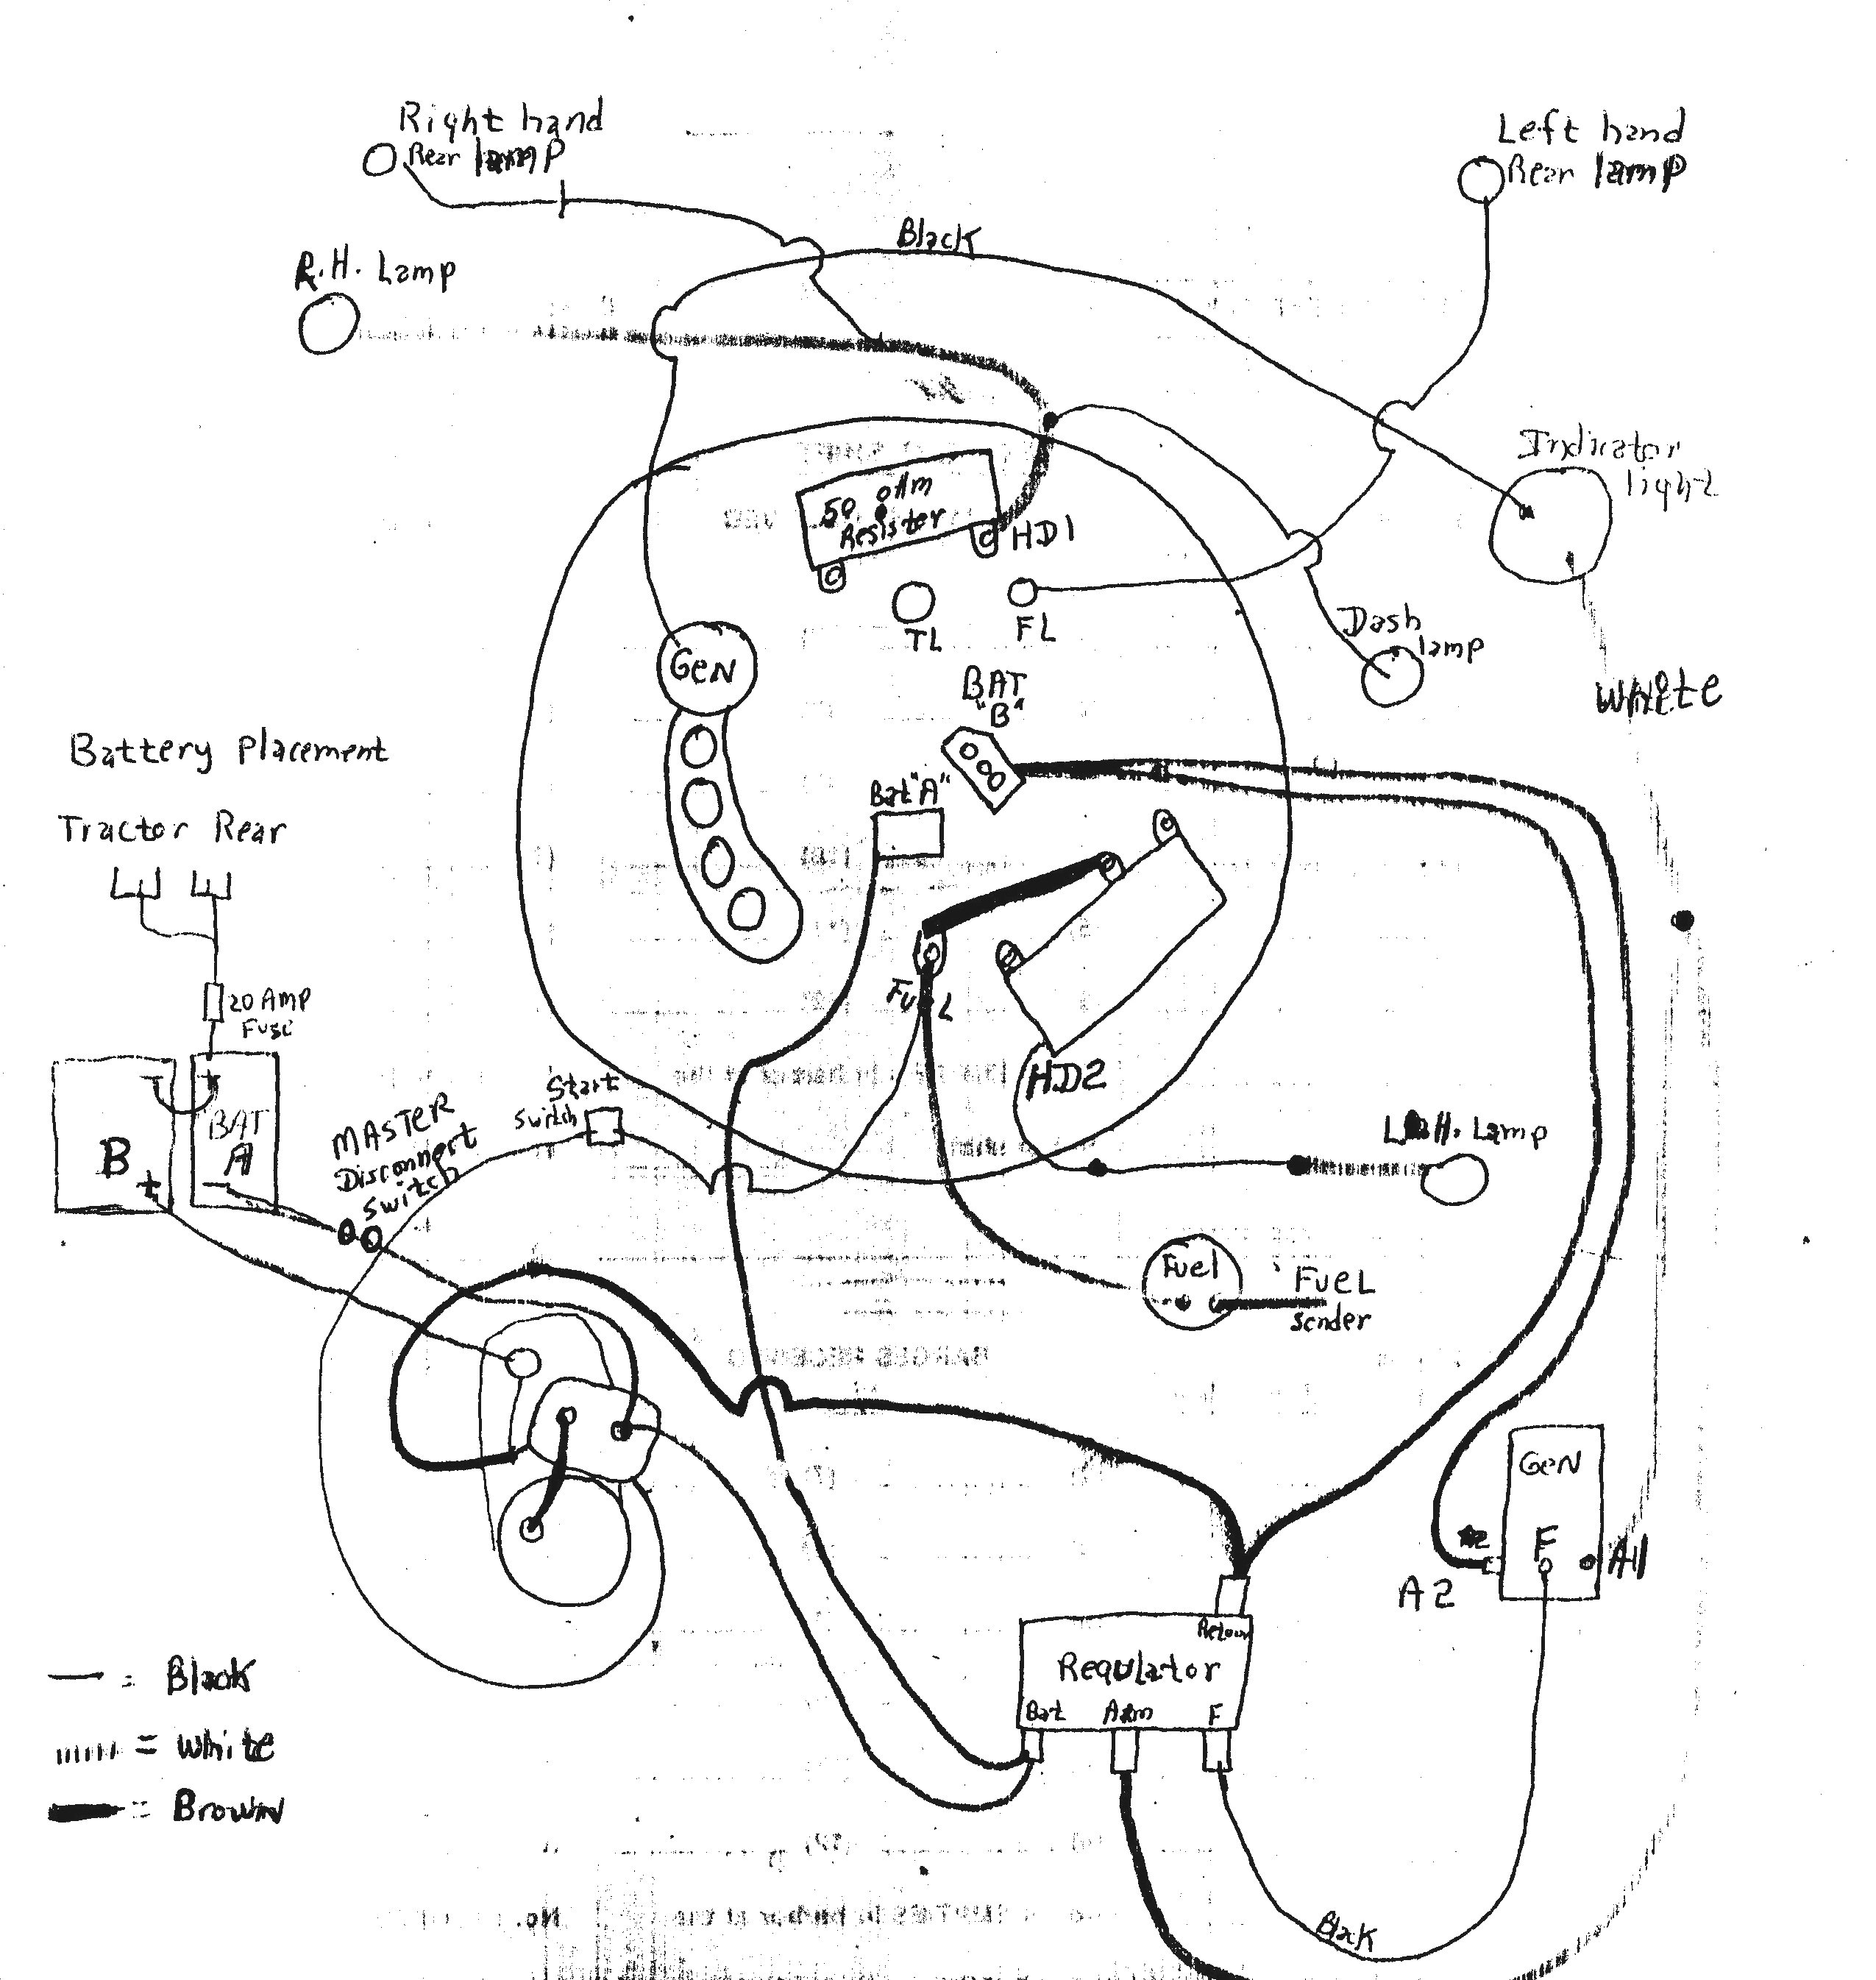 24volt_wiring_diagram 24v alternator wiring diagram 12v bilge pump wiring diagram \u2022 free  at gsmx.co